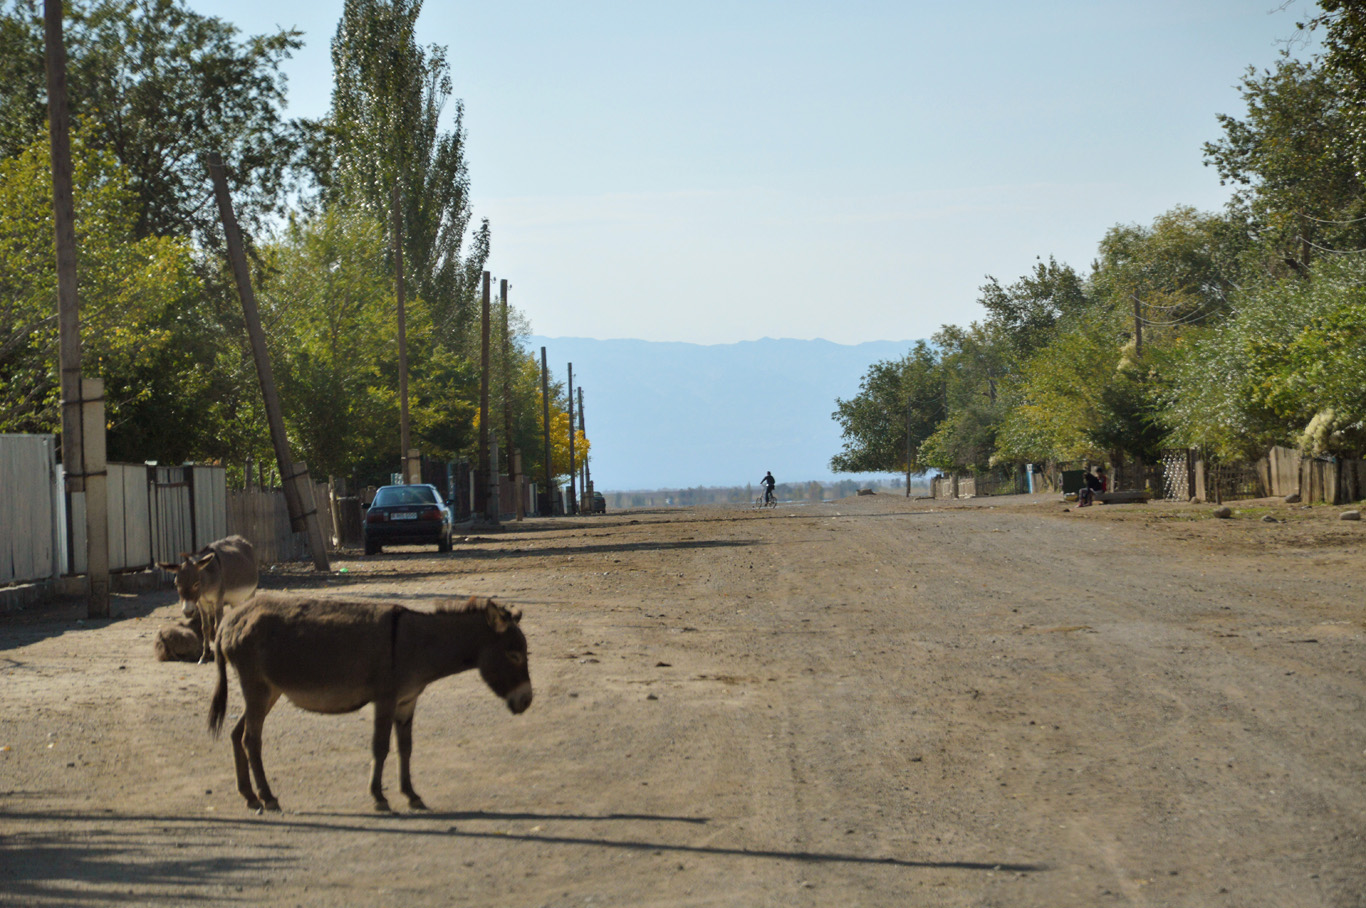 Donkeys in one of the forgotten villages on the way